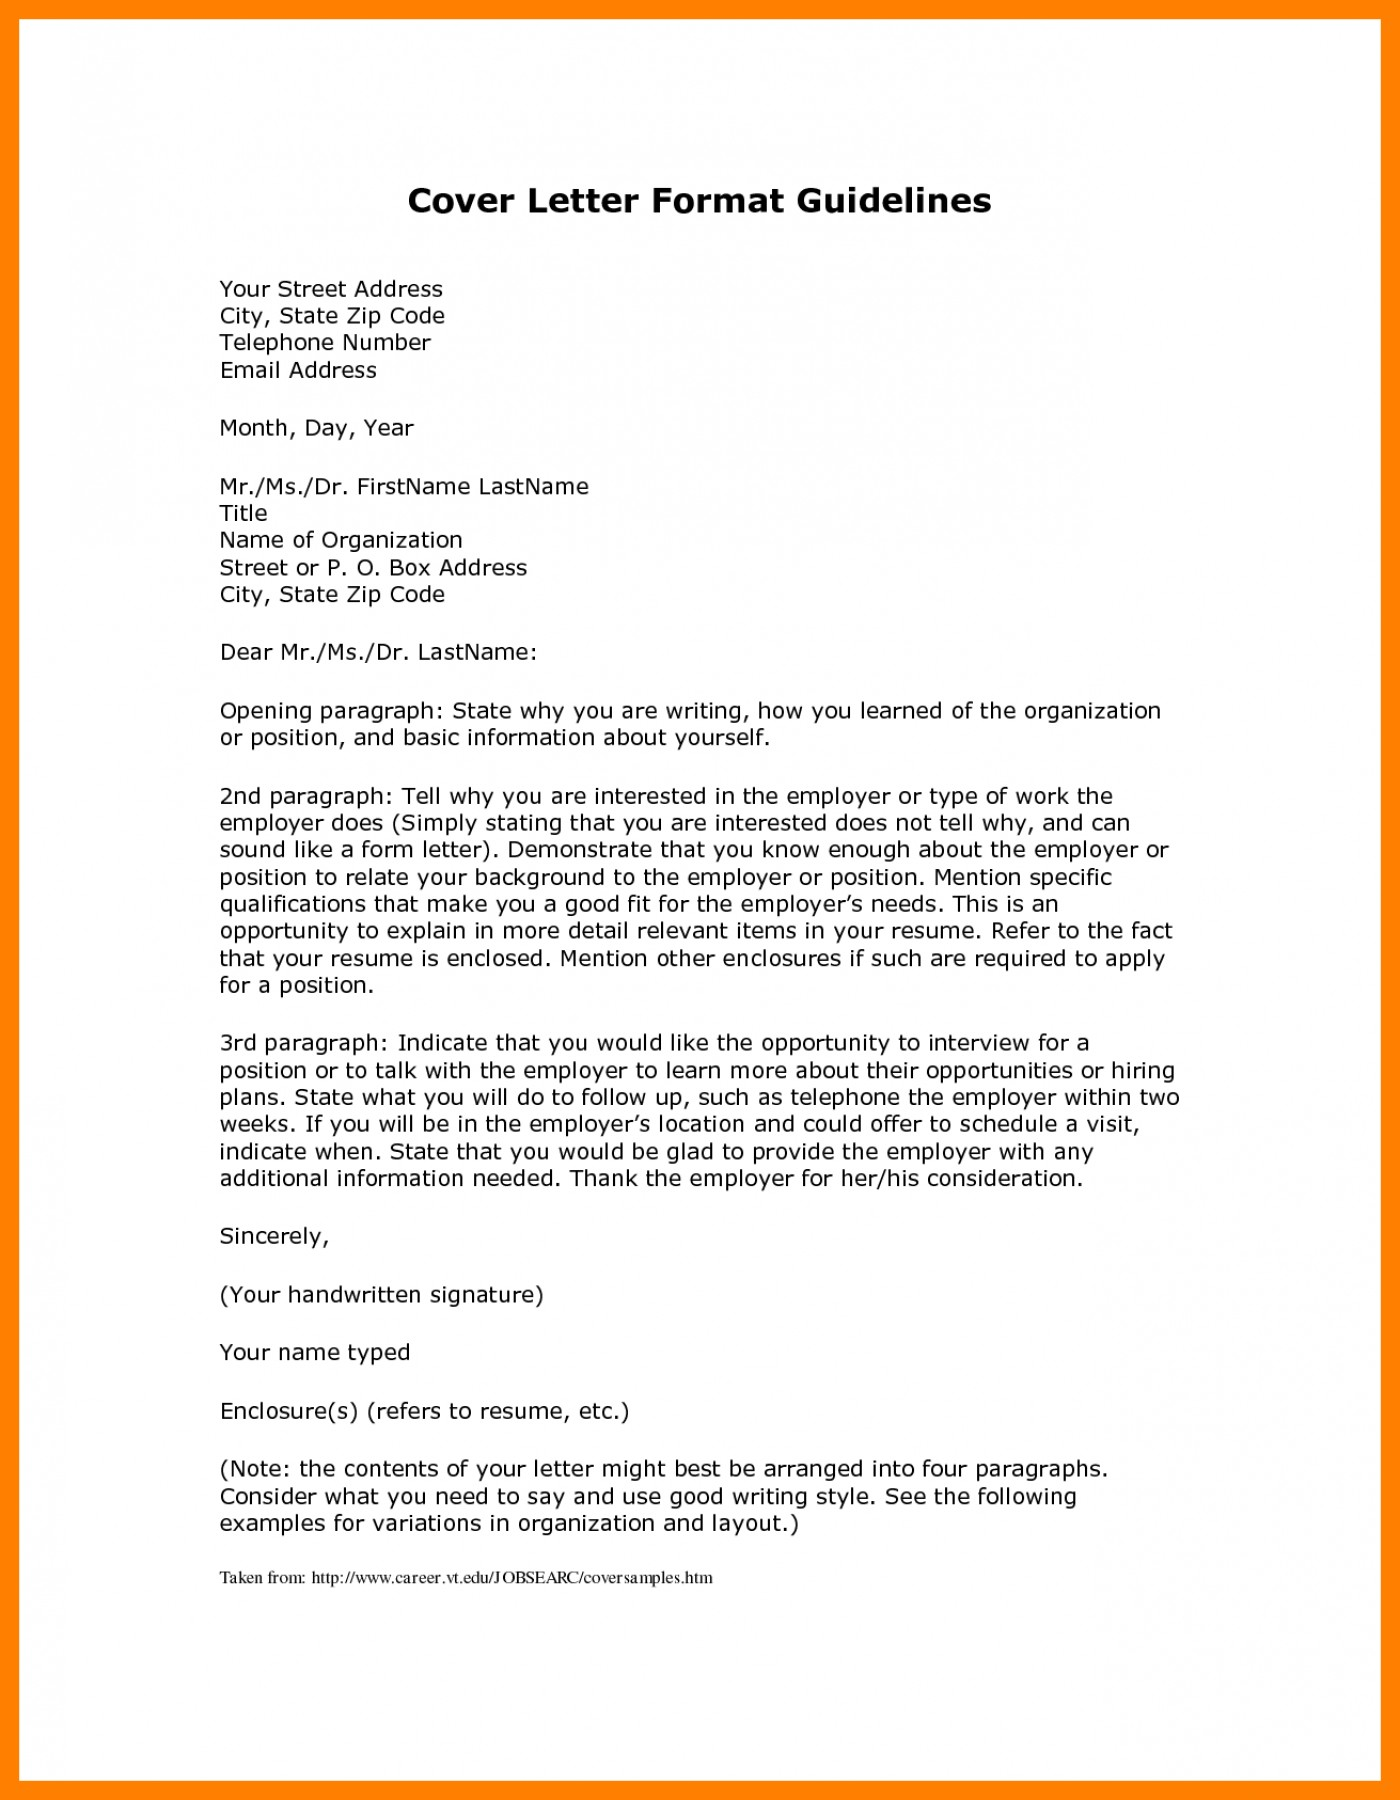 009 Essay Example Letter Format Samples Cover Unforgettable Formal In Hindi English Spm 1400